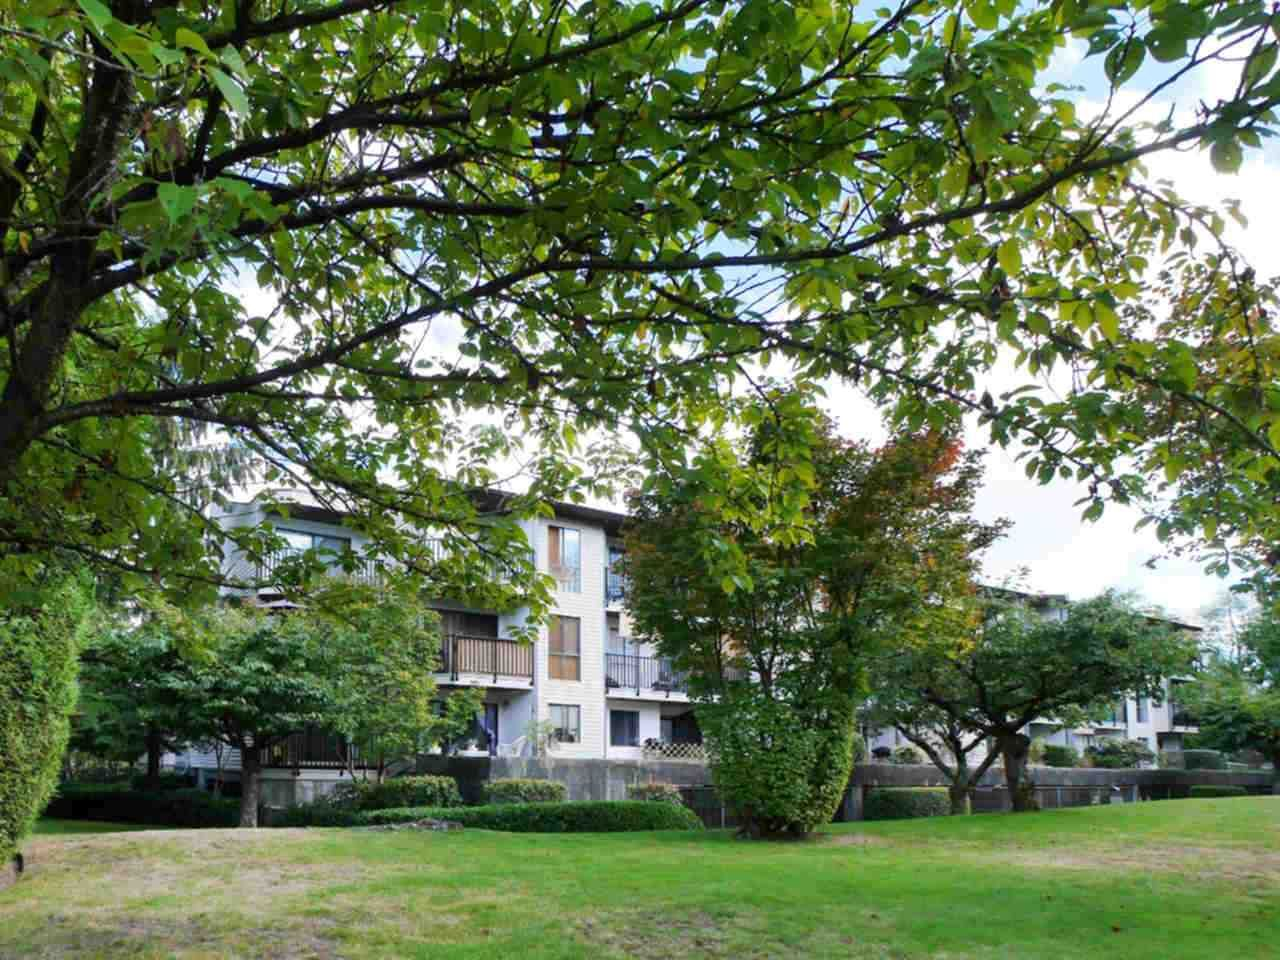 """Photo 3: Photos: 105 9952 149 Street in Surrey: Guildford Condo for sale in """"Tall Timbers"""" (North Surrey)  : MLS®# R2107429"""